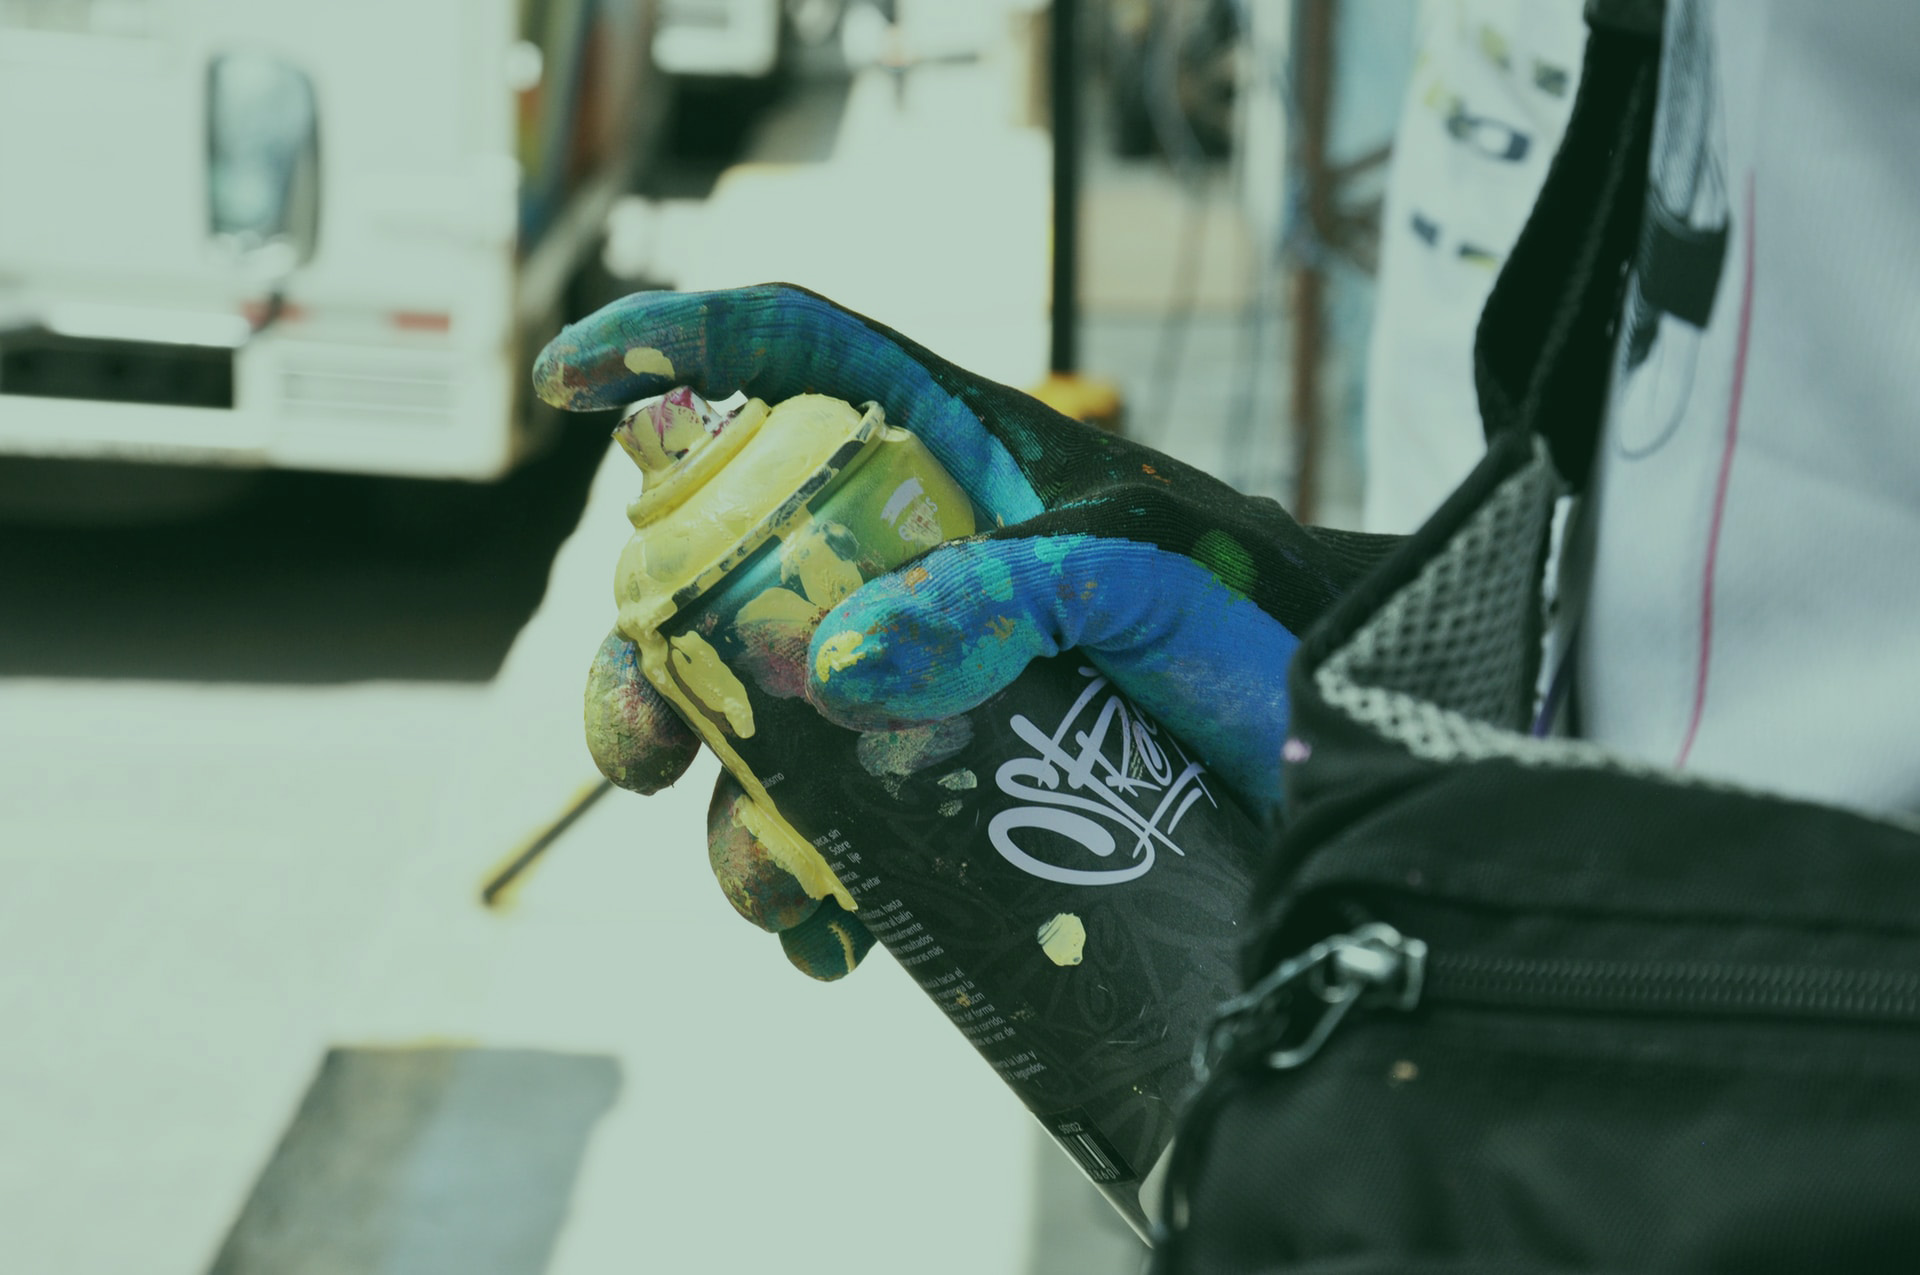 gloved hand holding a can of yellow spray paint